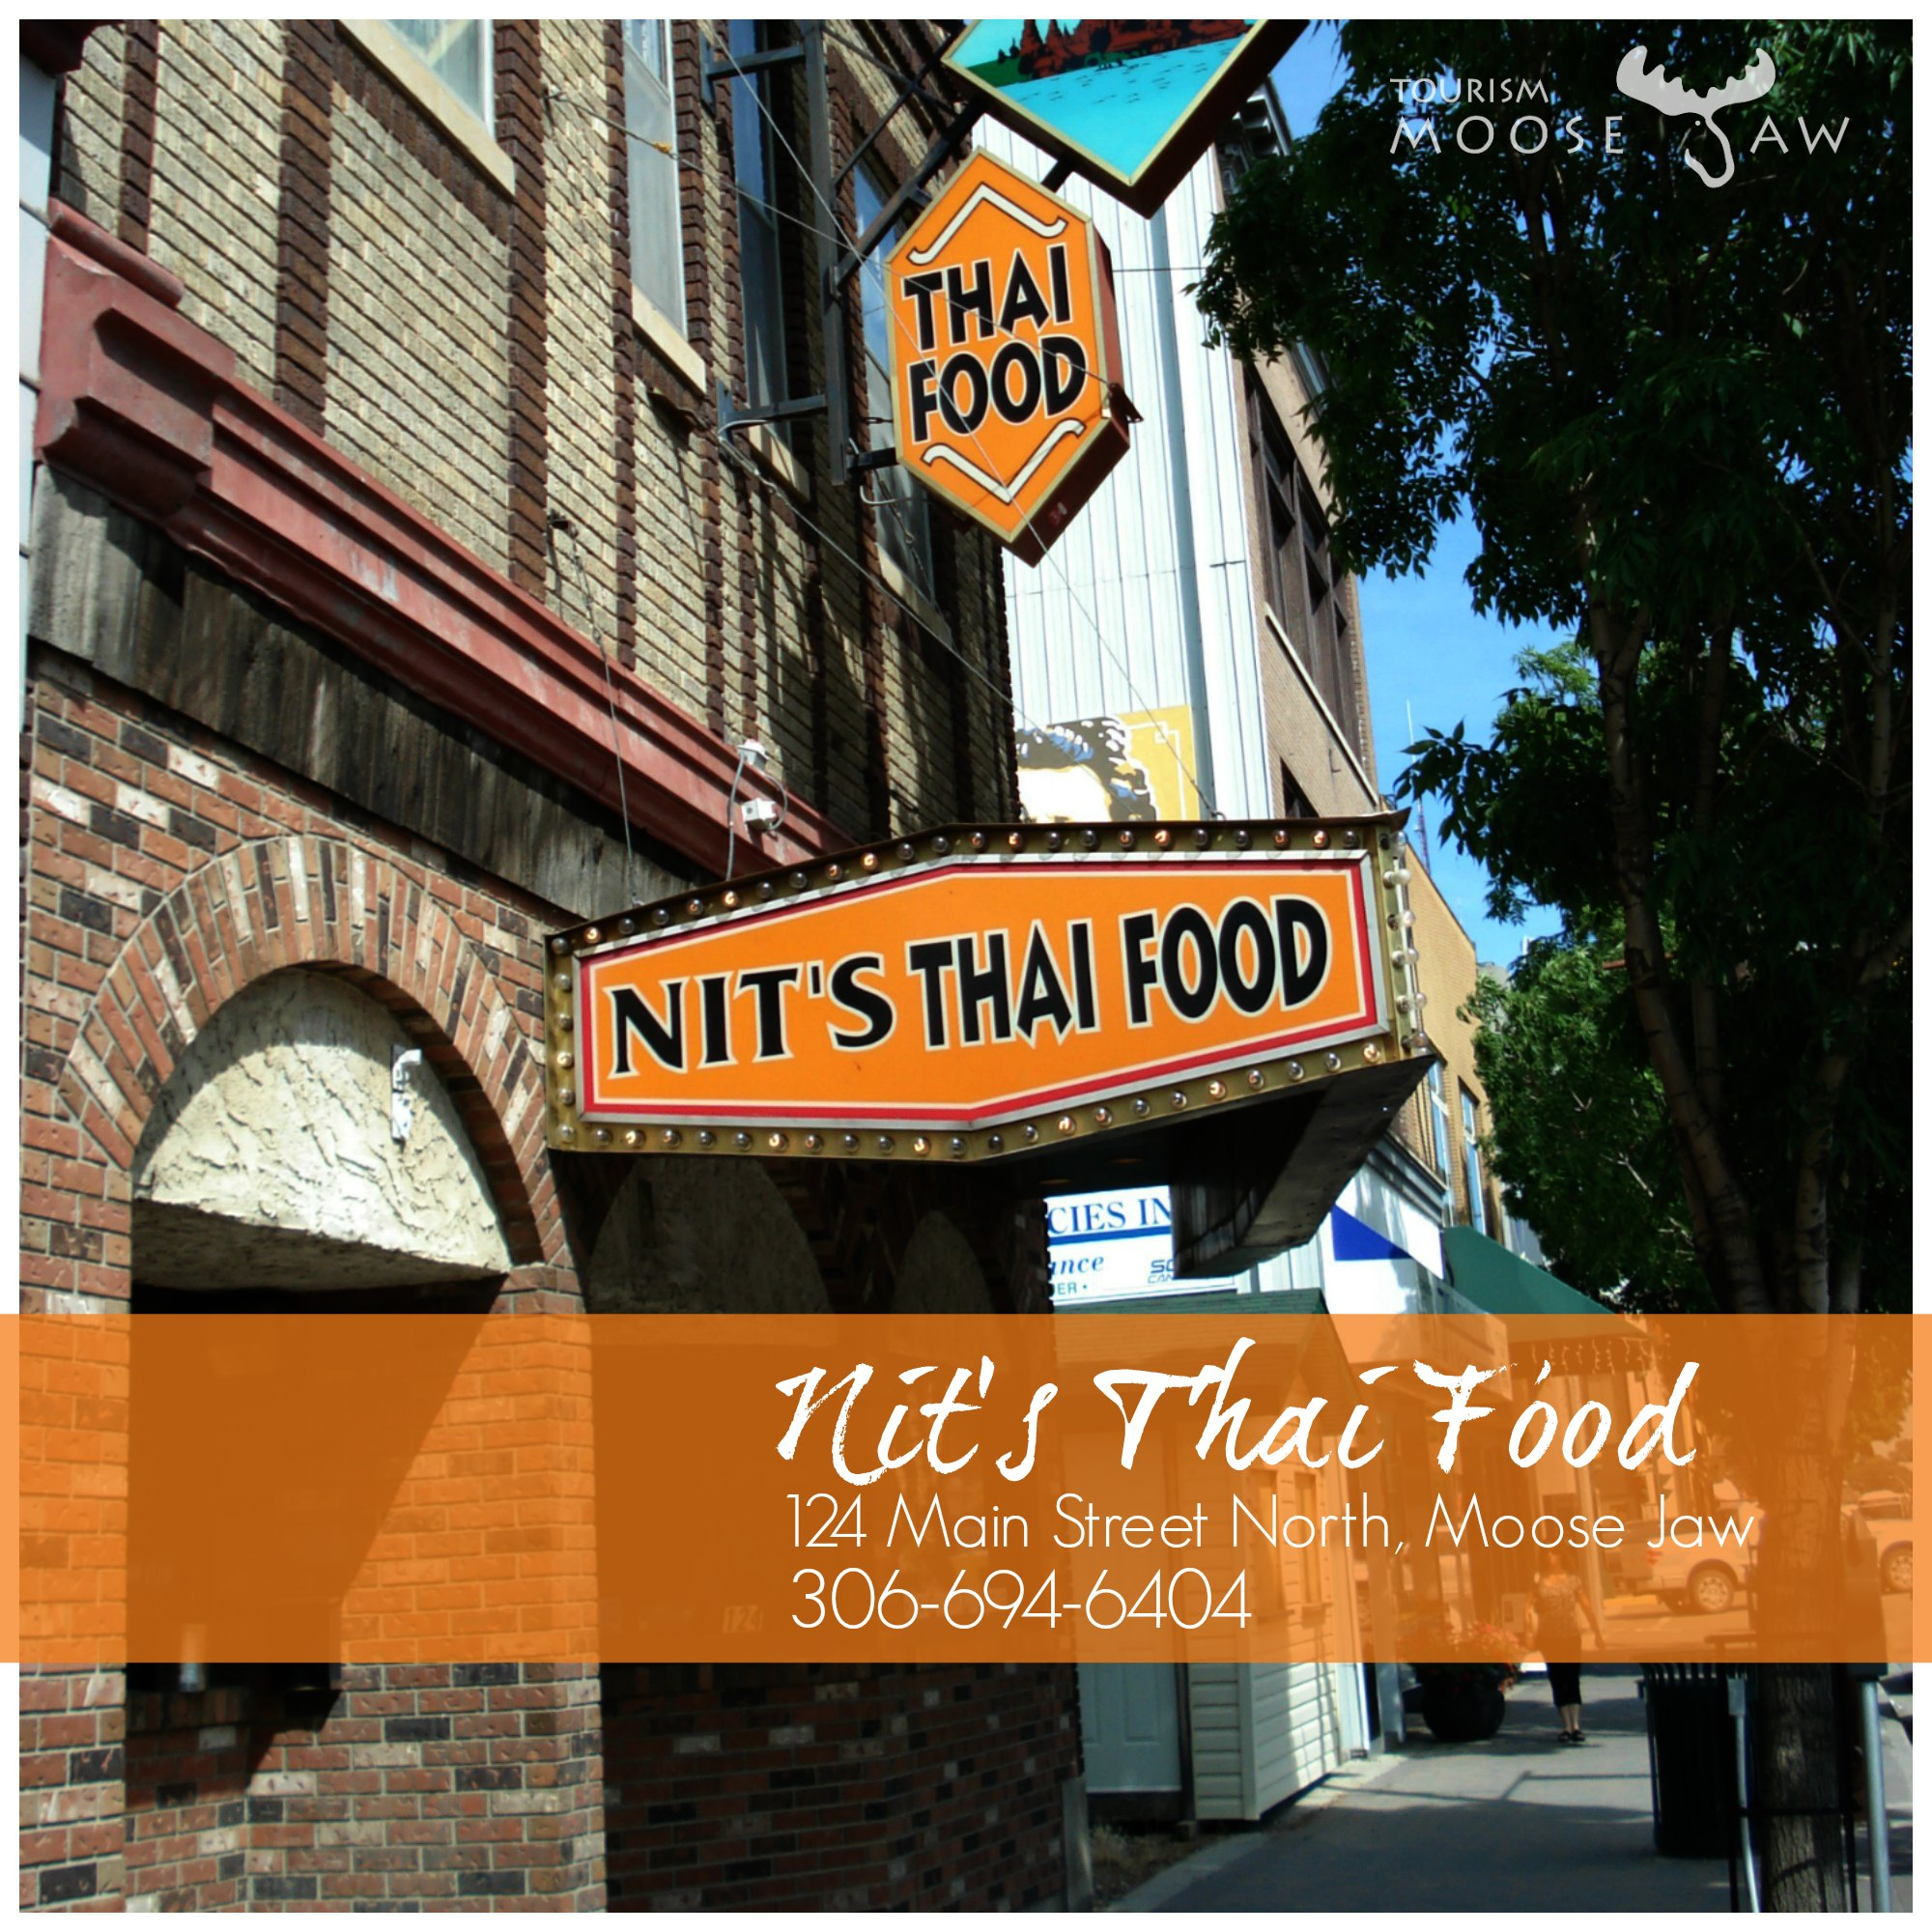 Nit's Thai Food.jpg